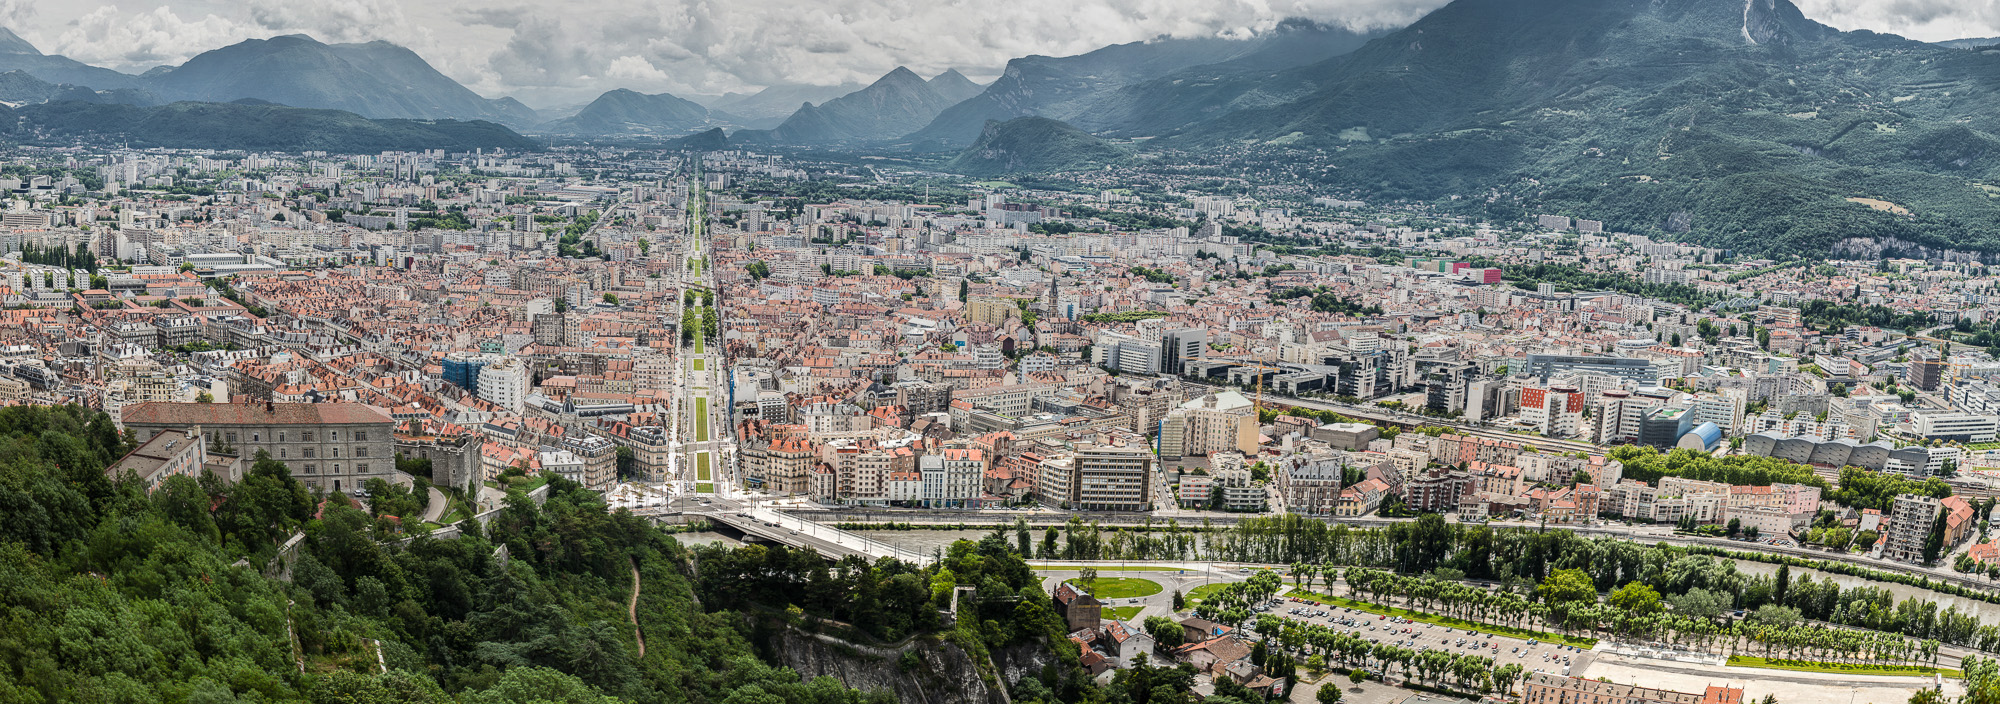 Skazar photographie - Grenoble